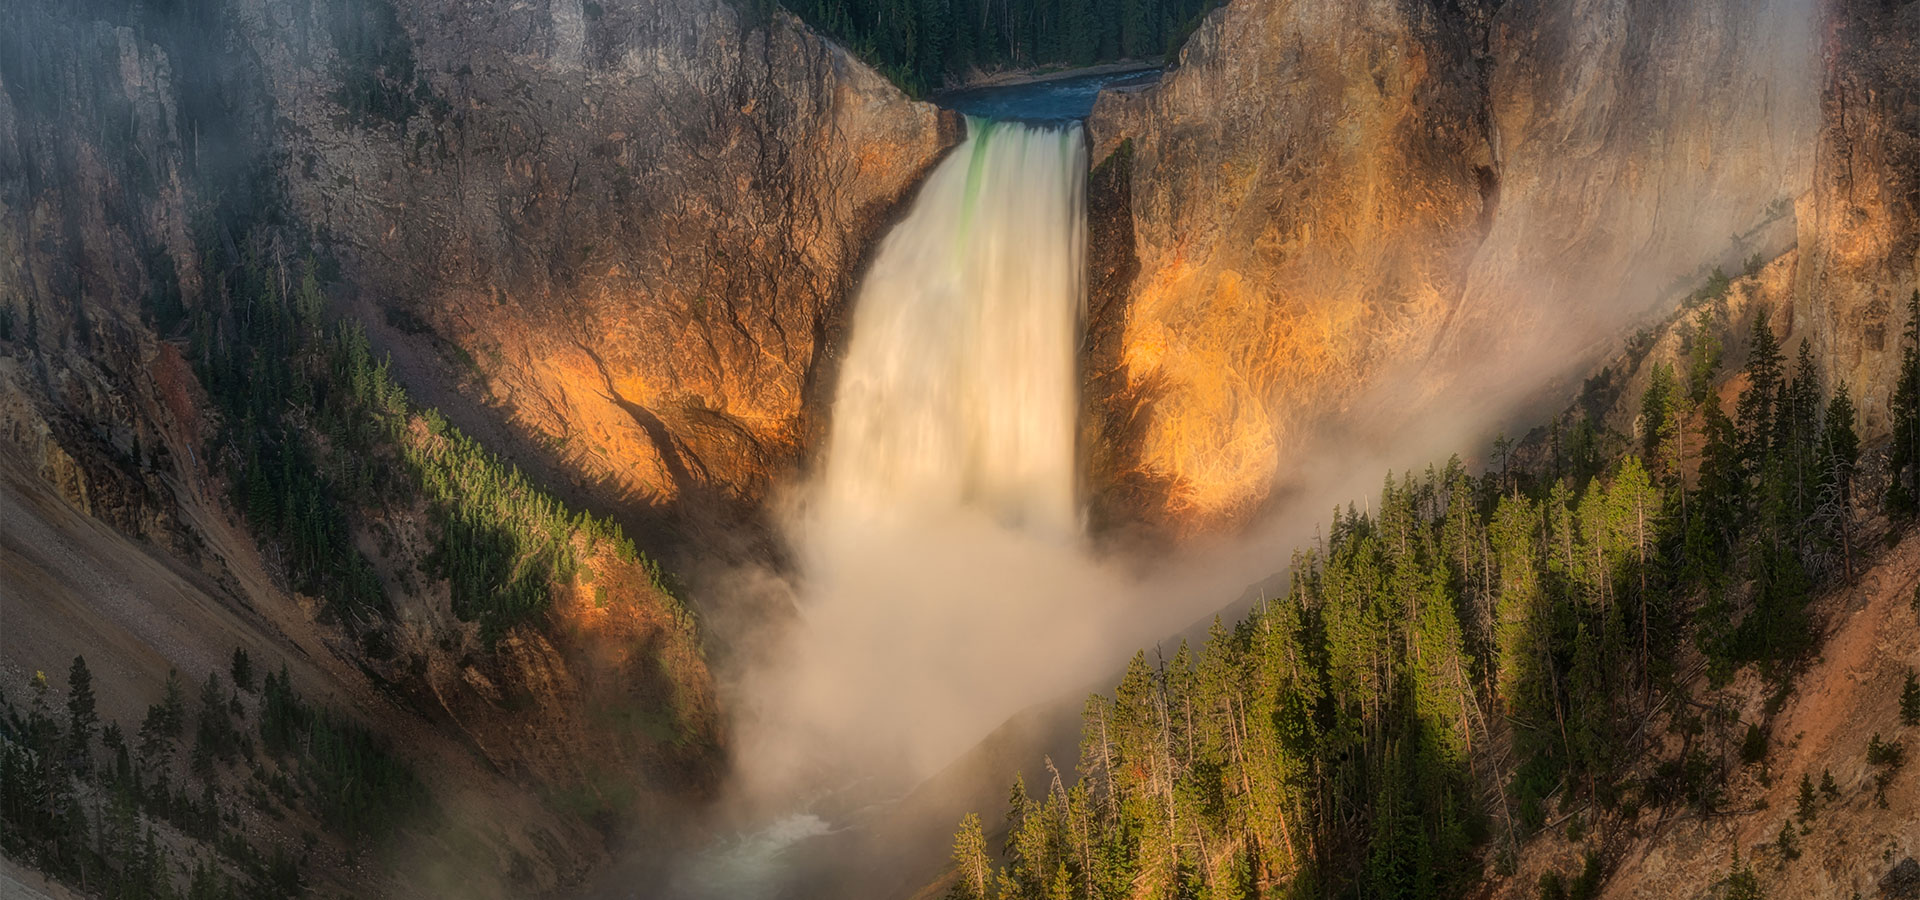 Landscape Photography in Yellowstone National Park